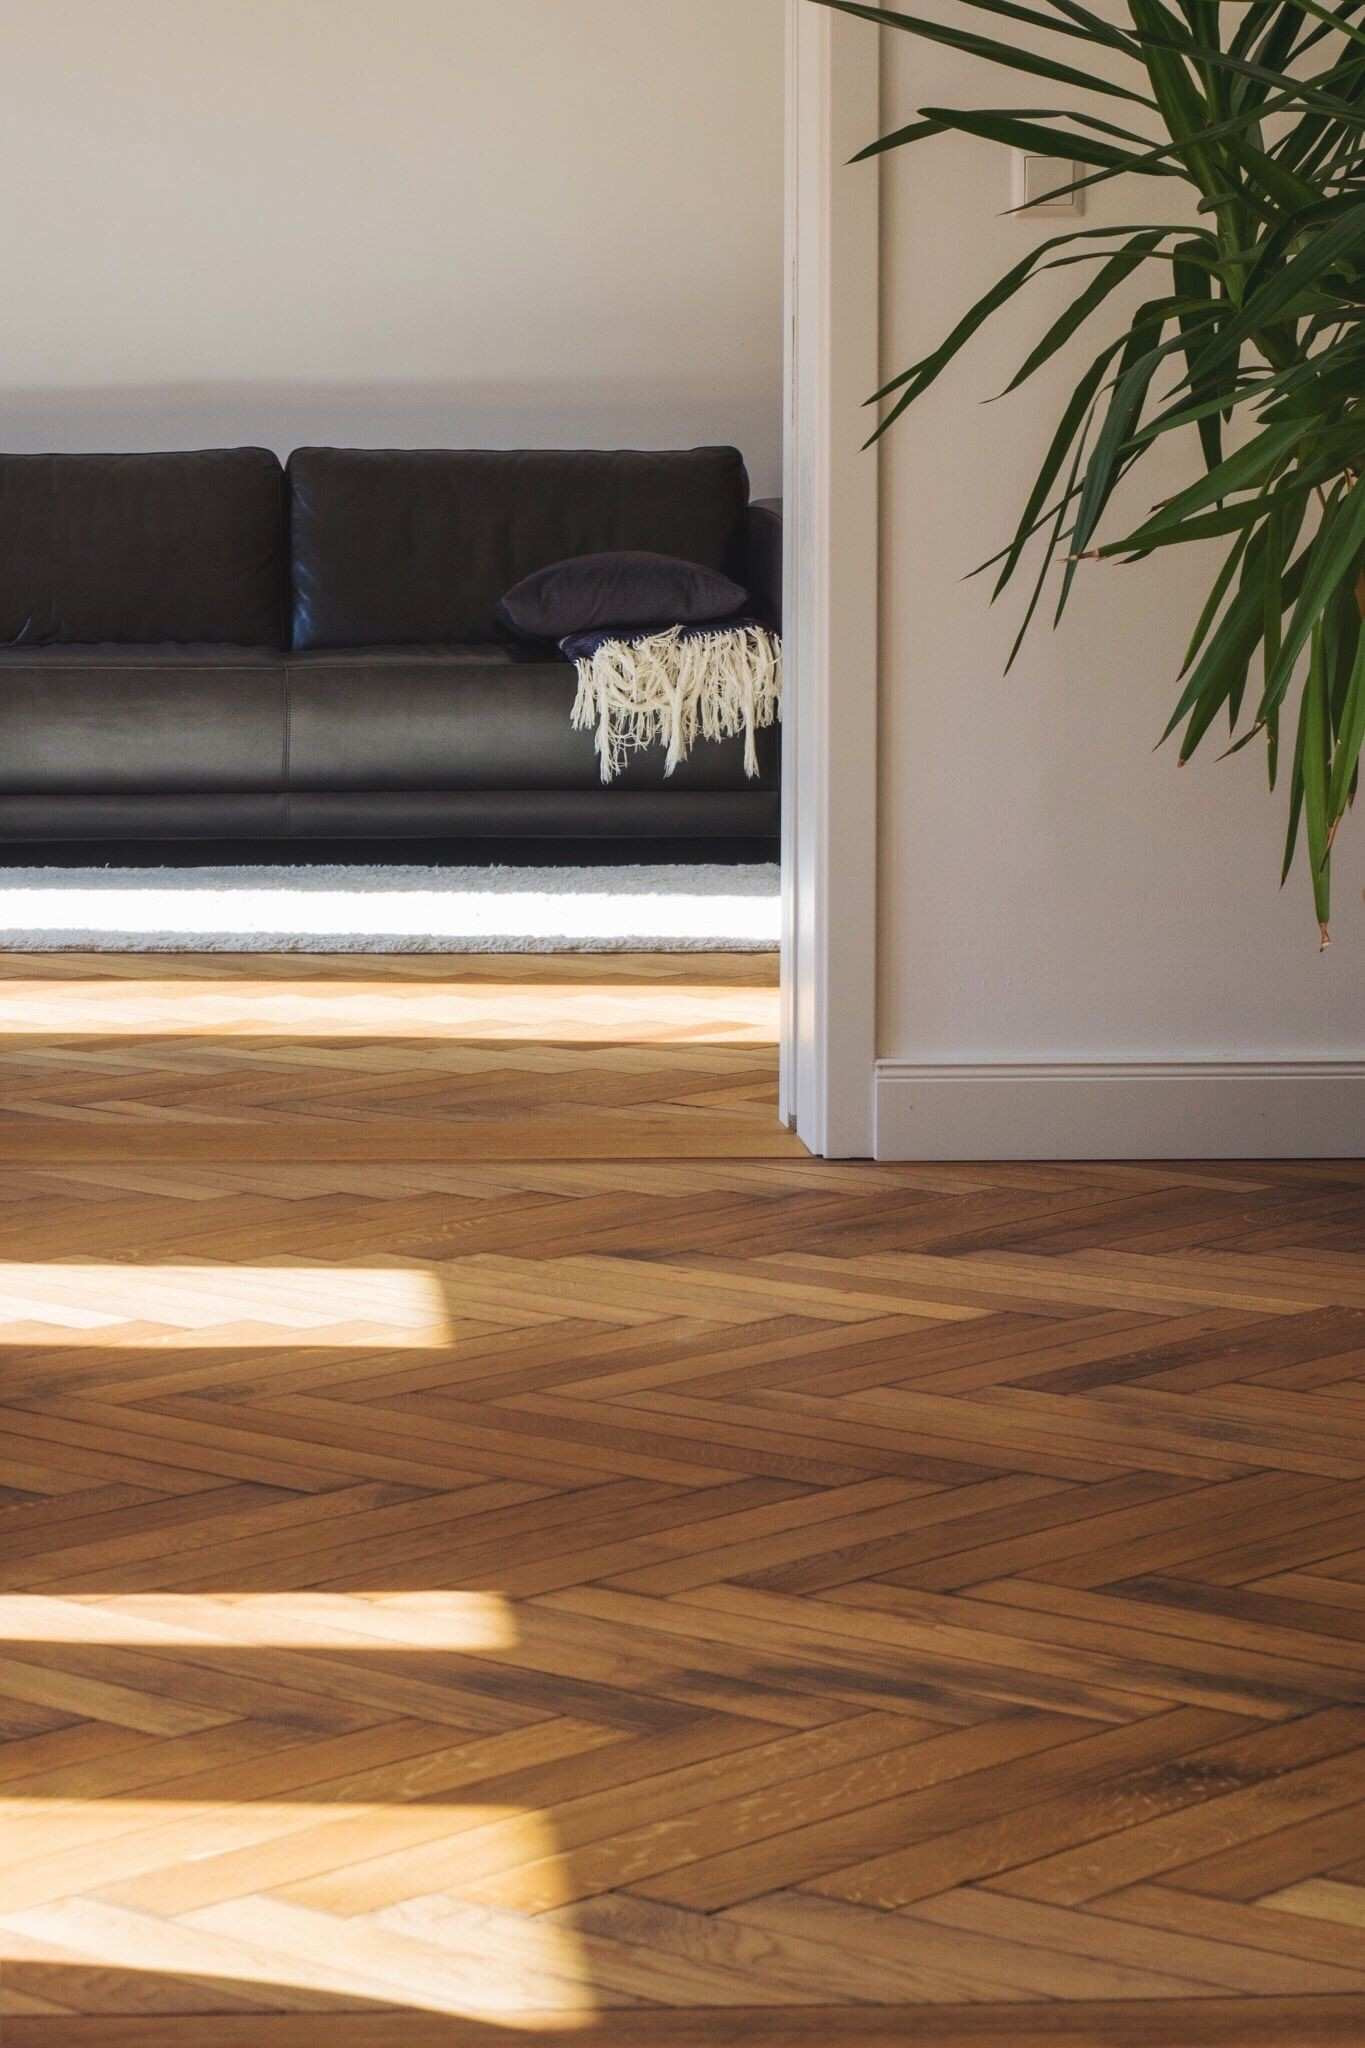 stores that sell hardwood flooring of decorating ideas for living rooms with hardwood floors elegant home pertaining to decorating ideas for living rooms with hardwood floors beautiful laminate flooring in a multi colored living